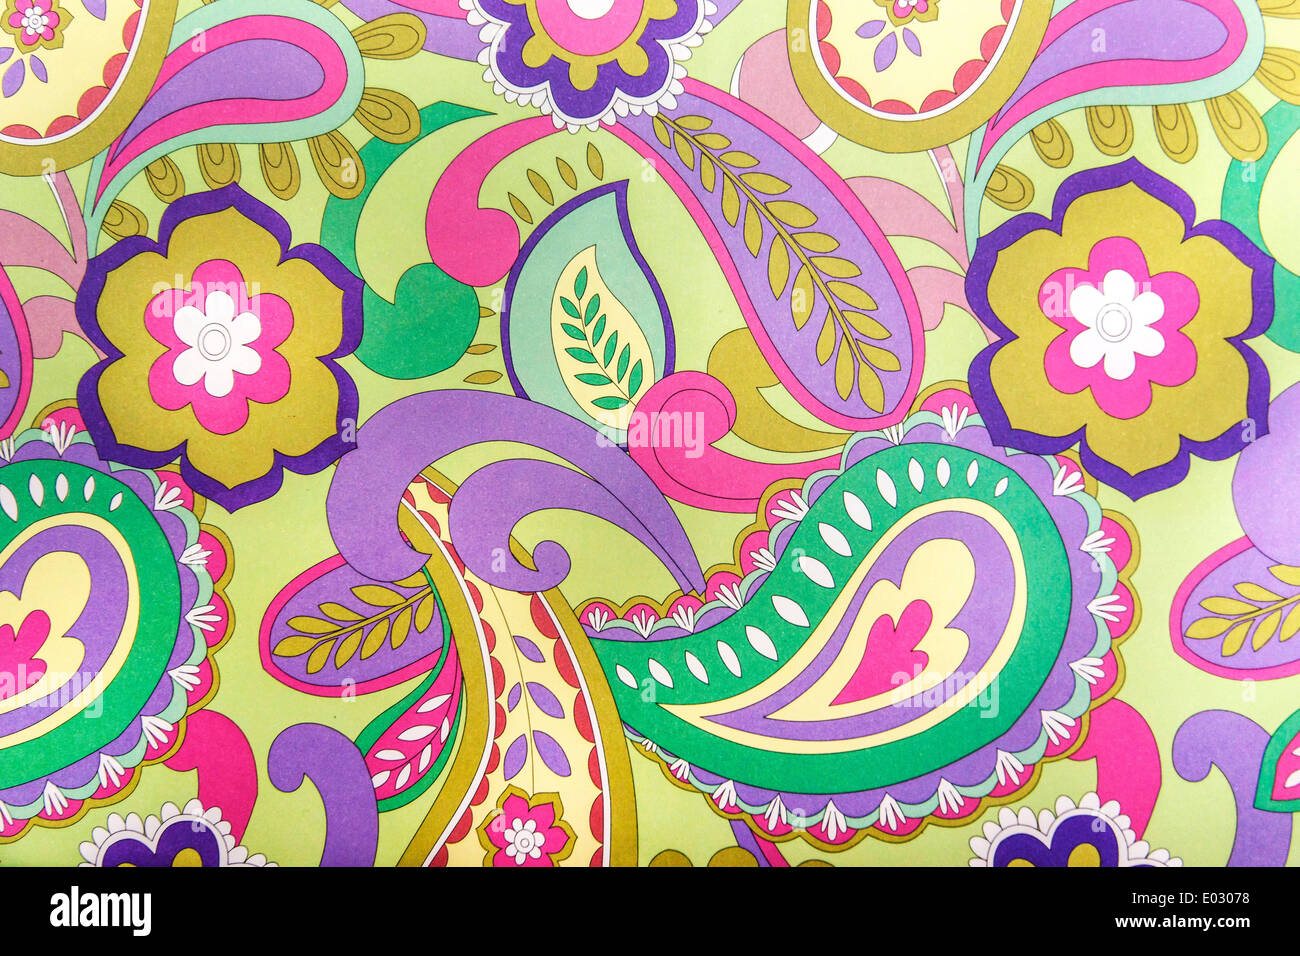 Funky Psychedelic Vintage Pattern Texture - Stock Image